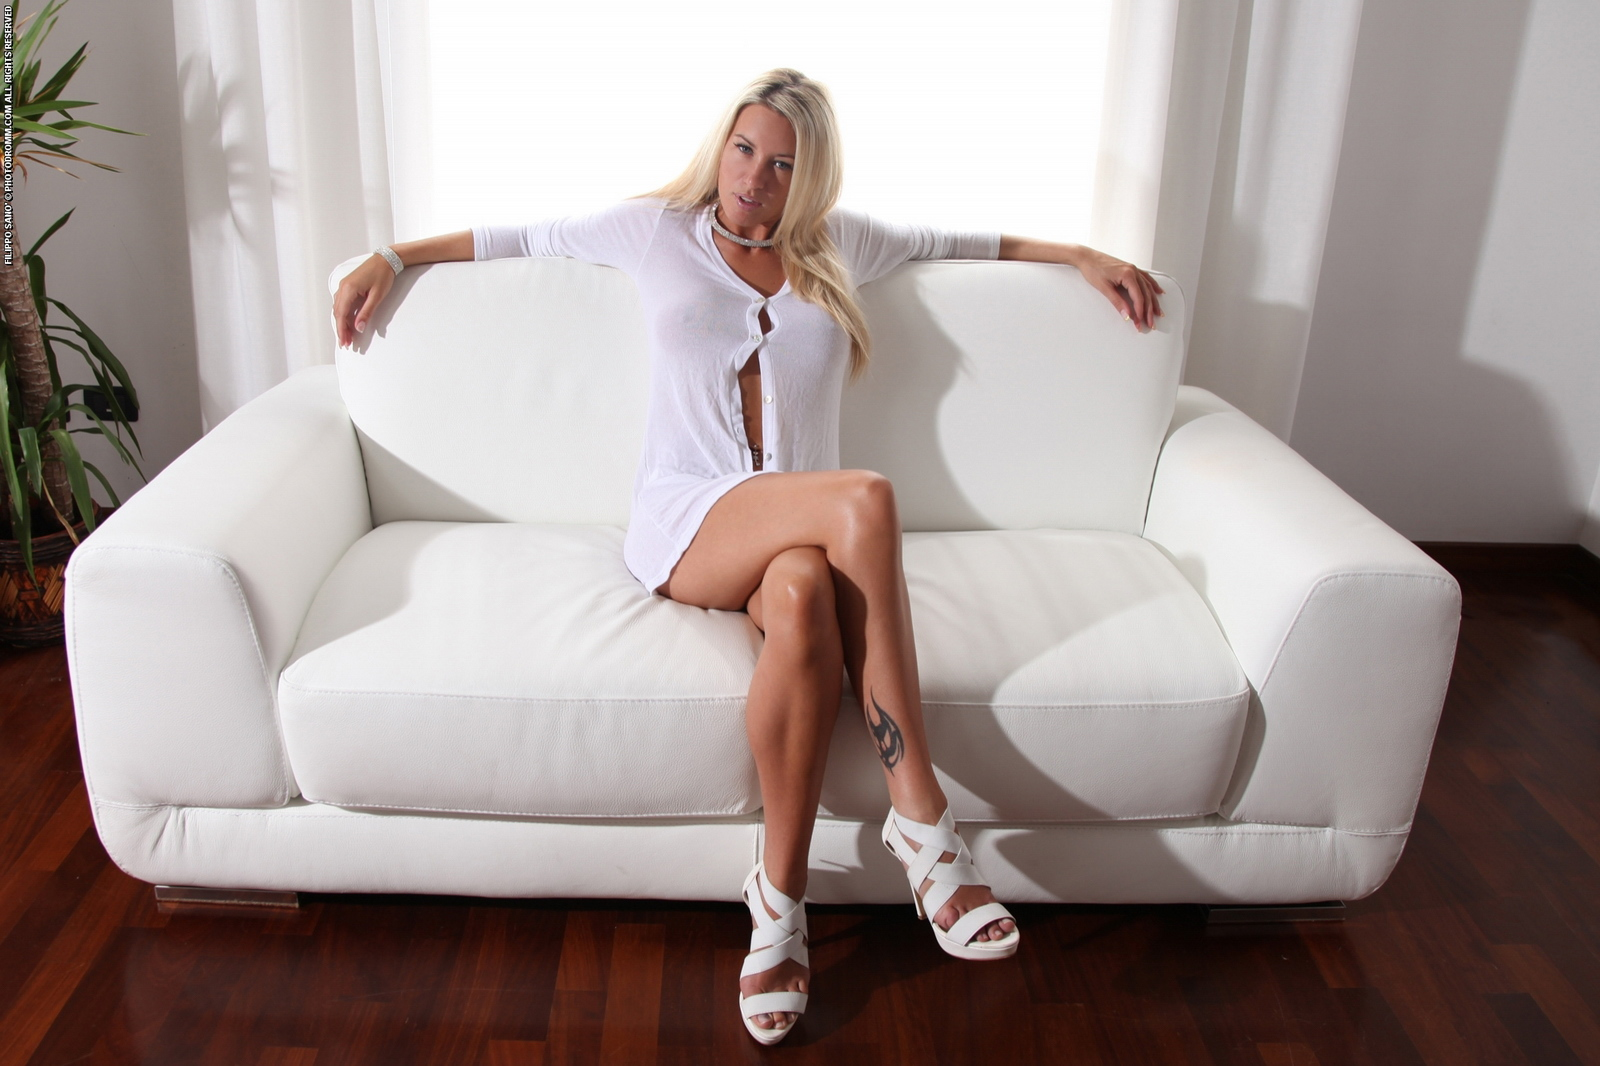 janine-naked-on-couch-busty-blonde-photodromm-01